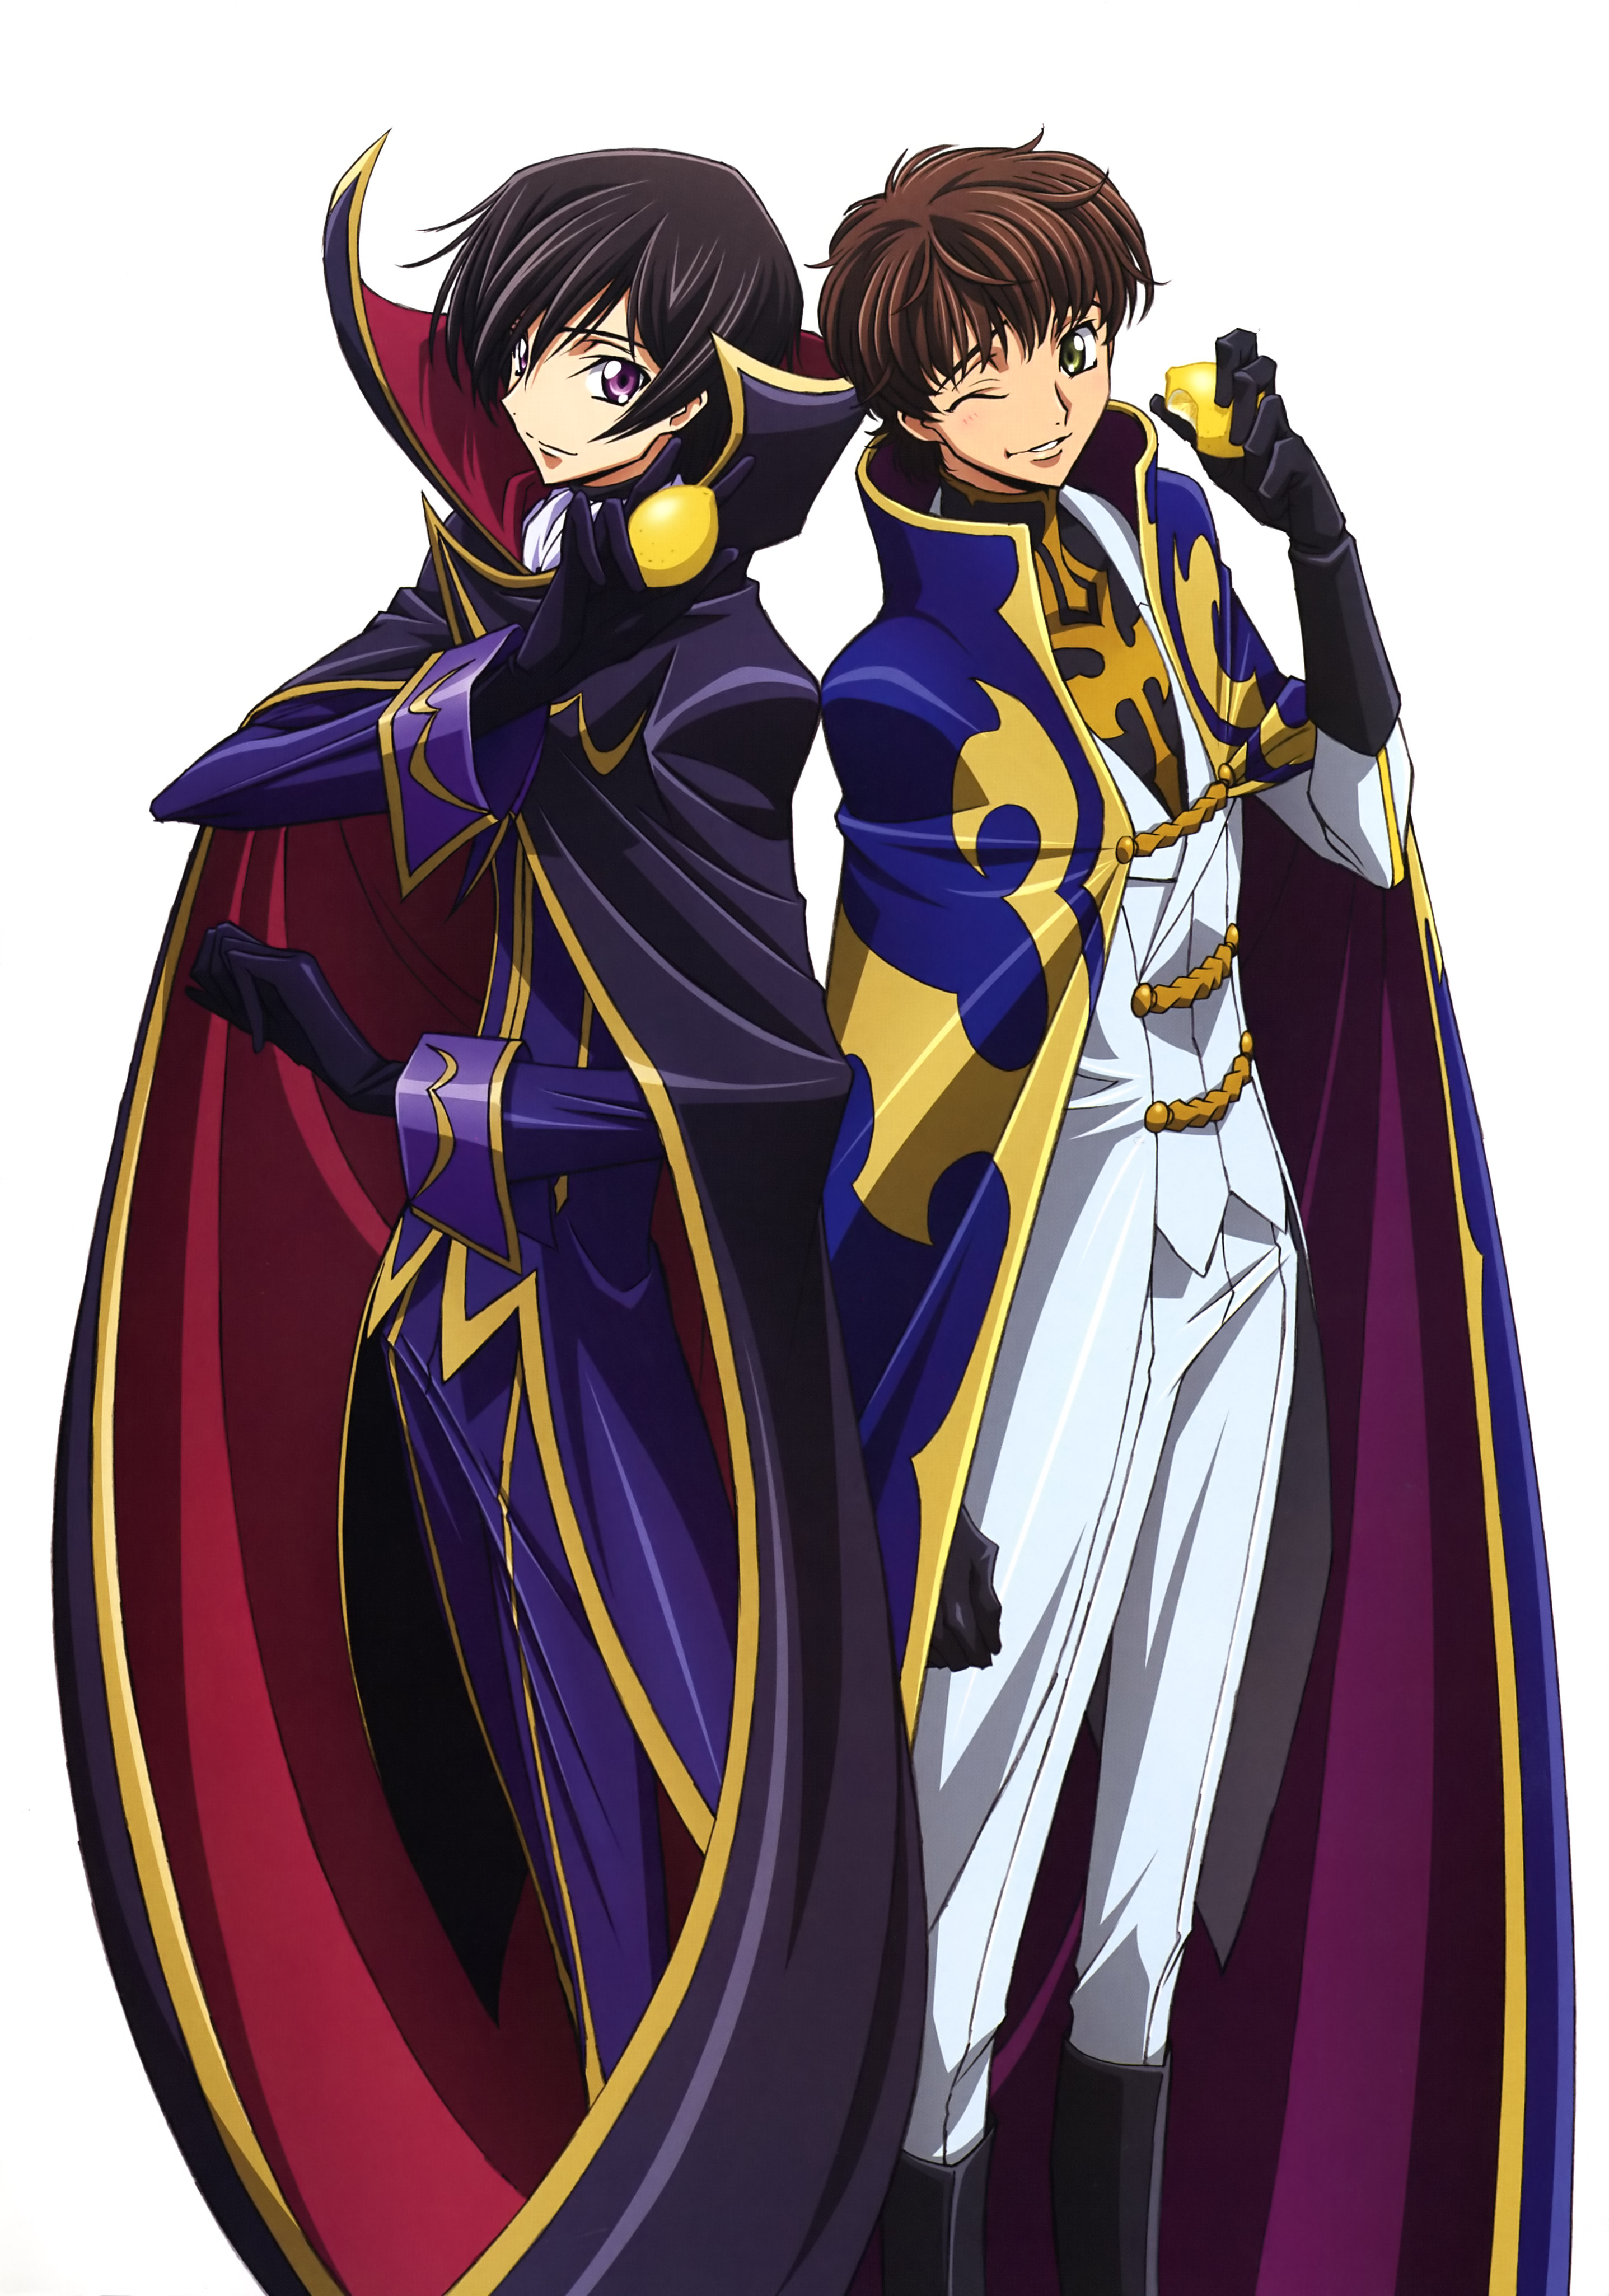 Zero Code Geass Mobile Wallpaper Zerochan Anime Image Board